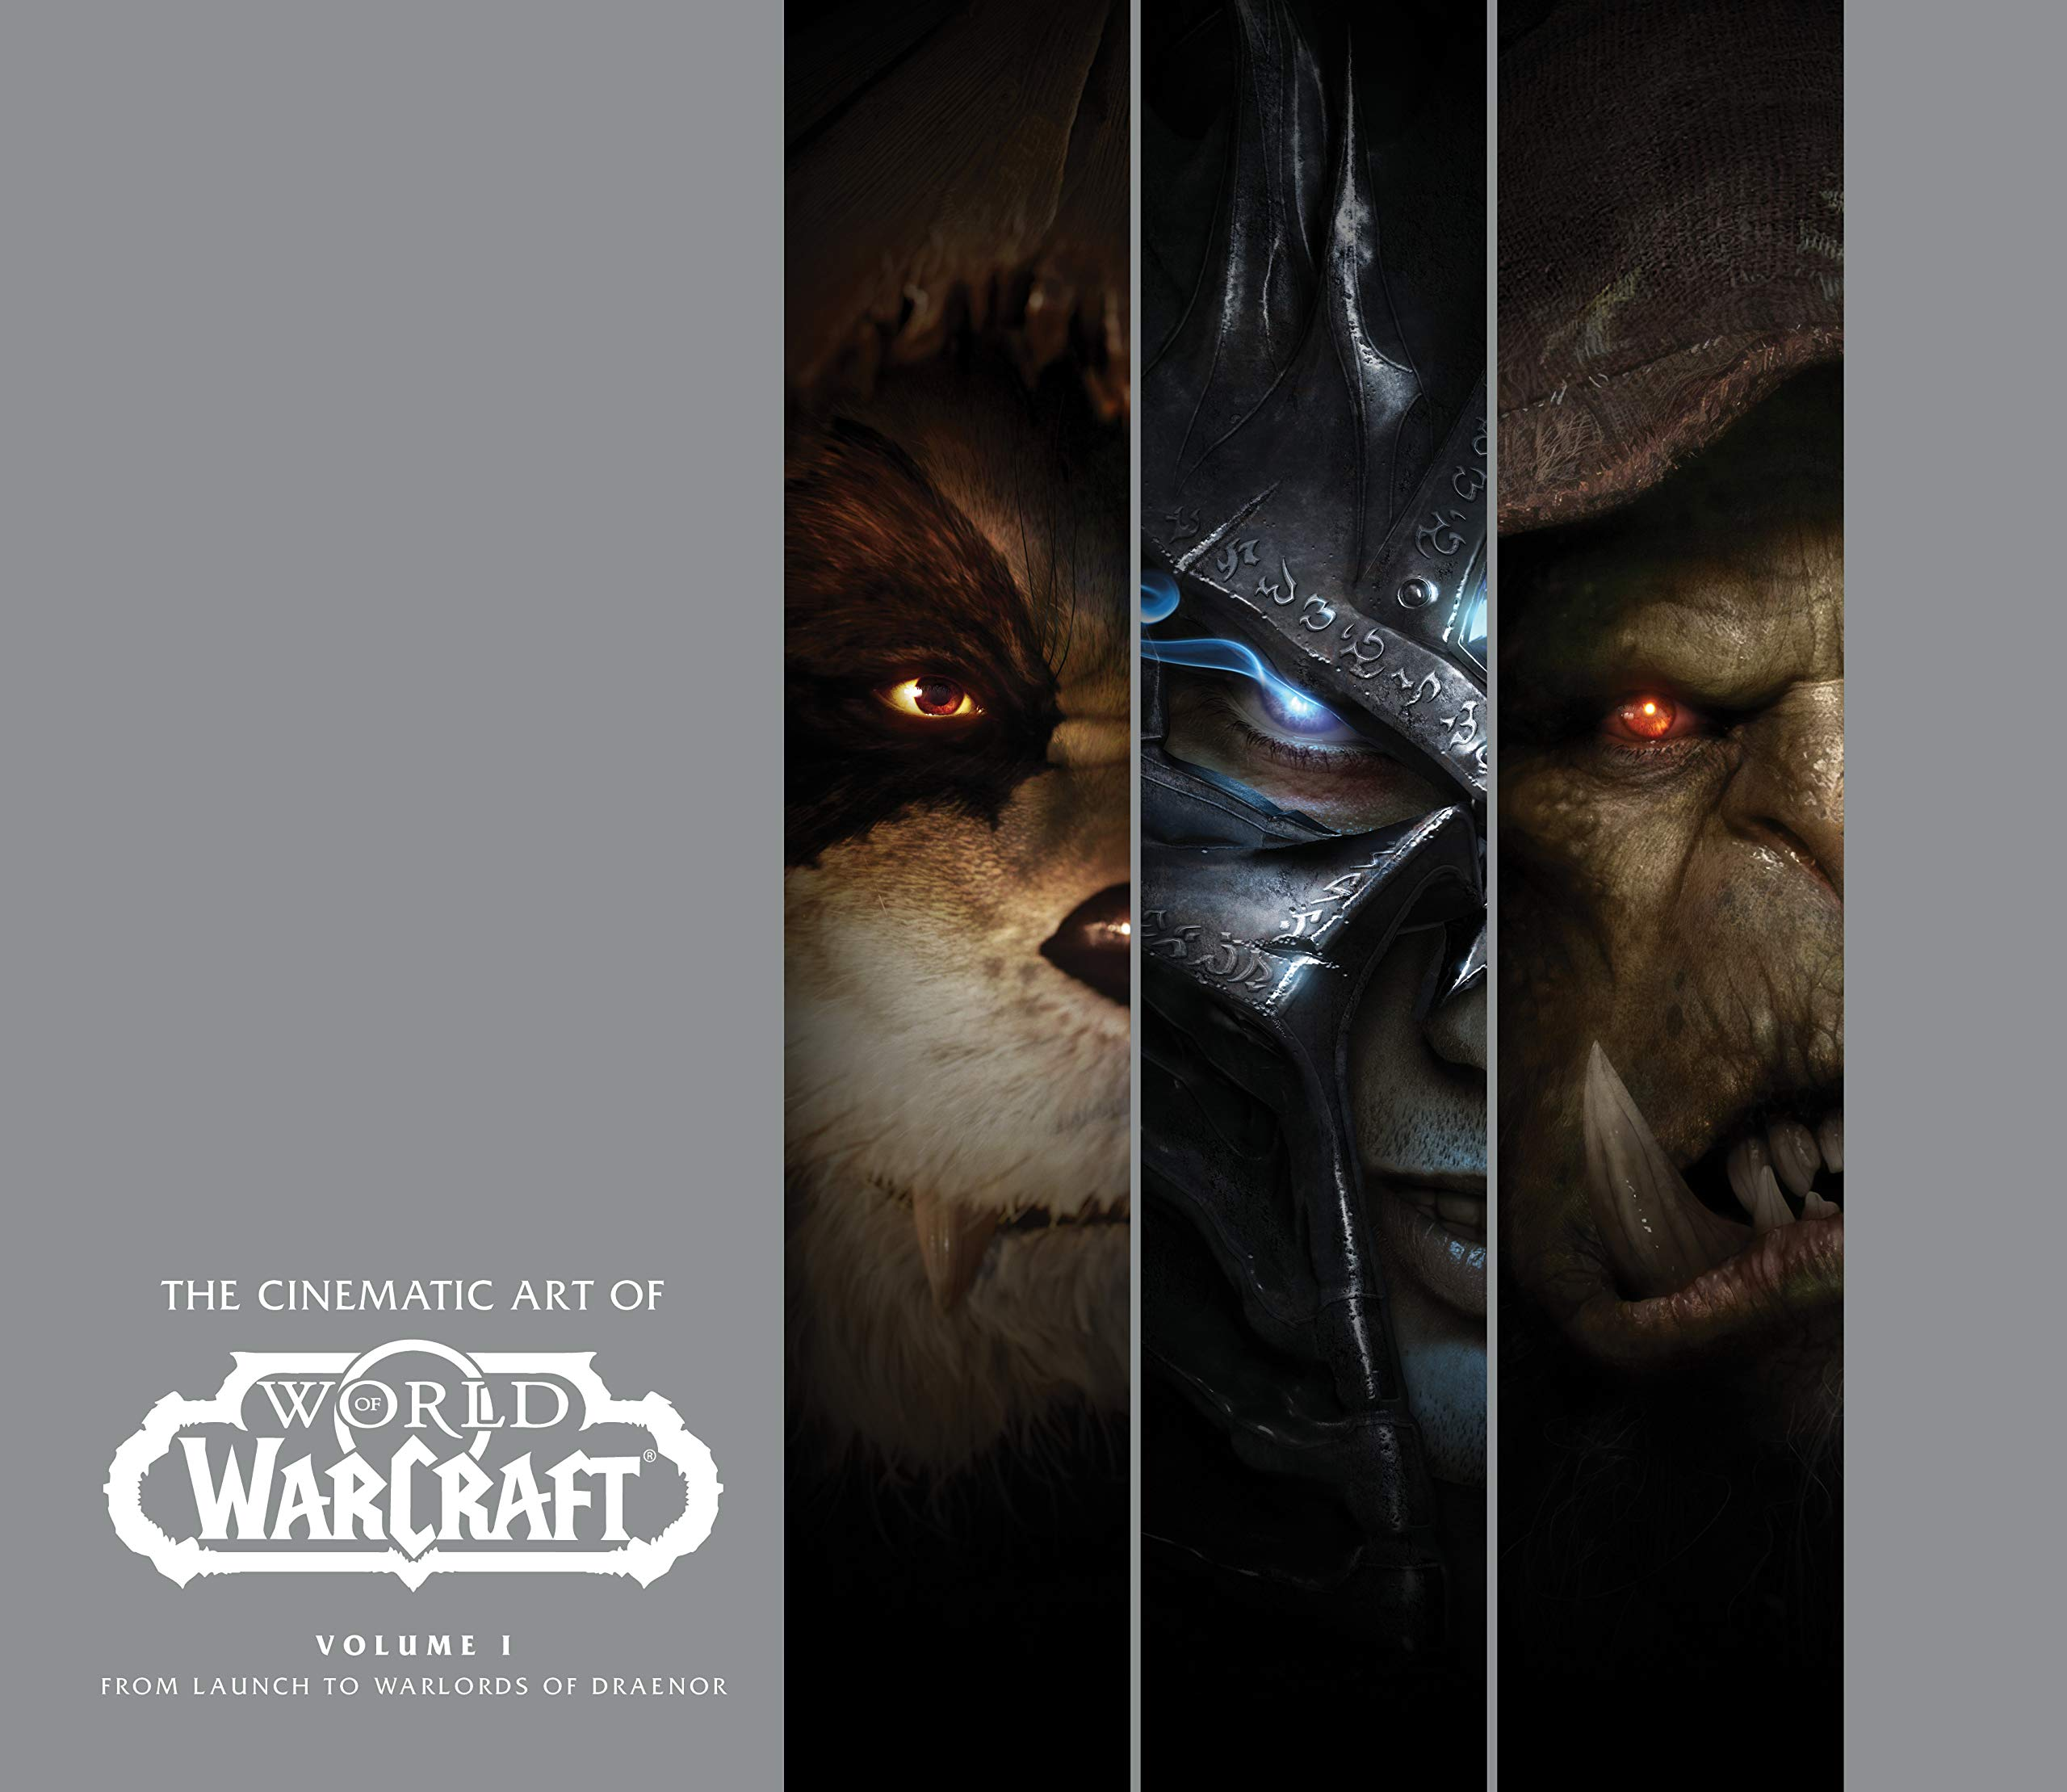 The Cinematic Art of World of Warcraft: Volume I by Blizzard Entertainment